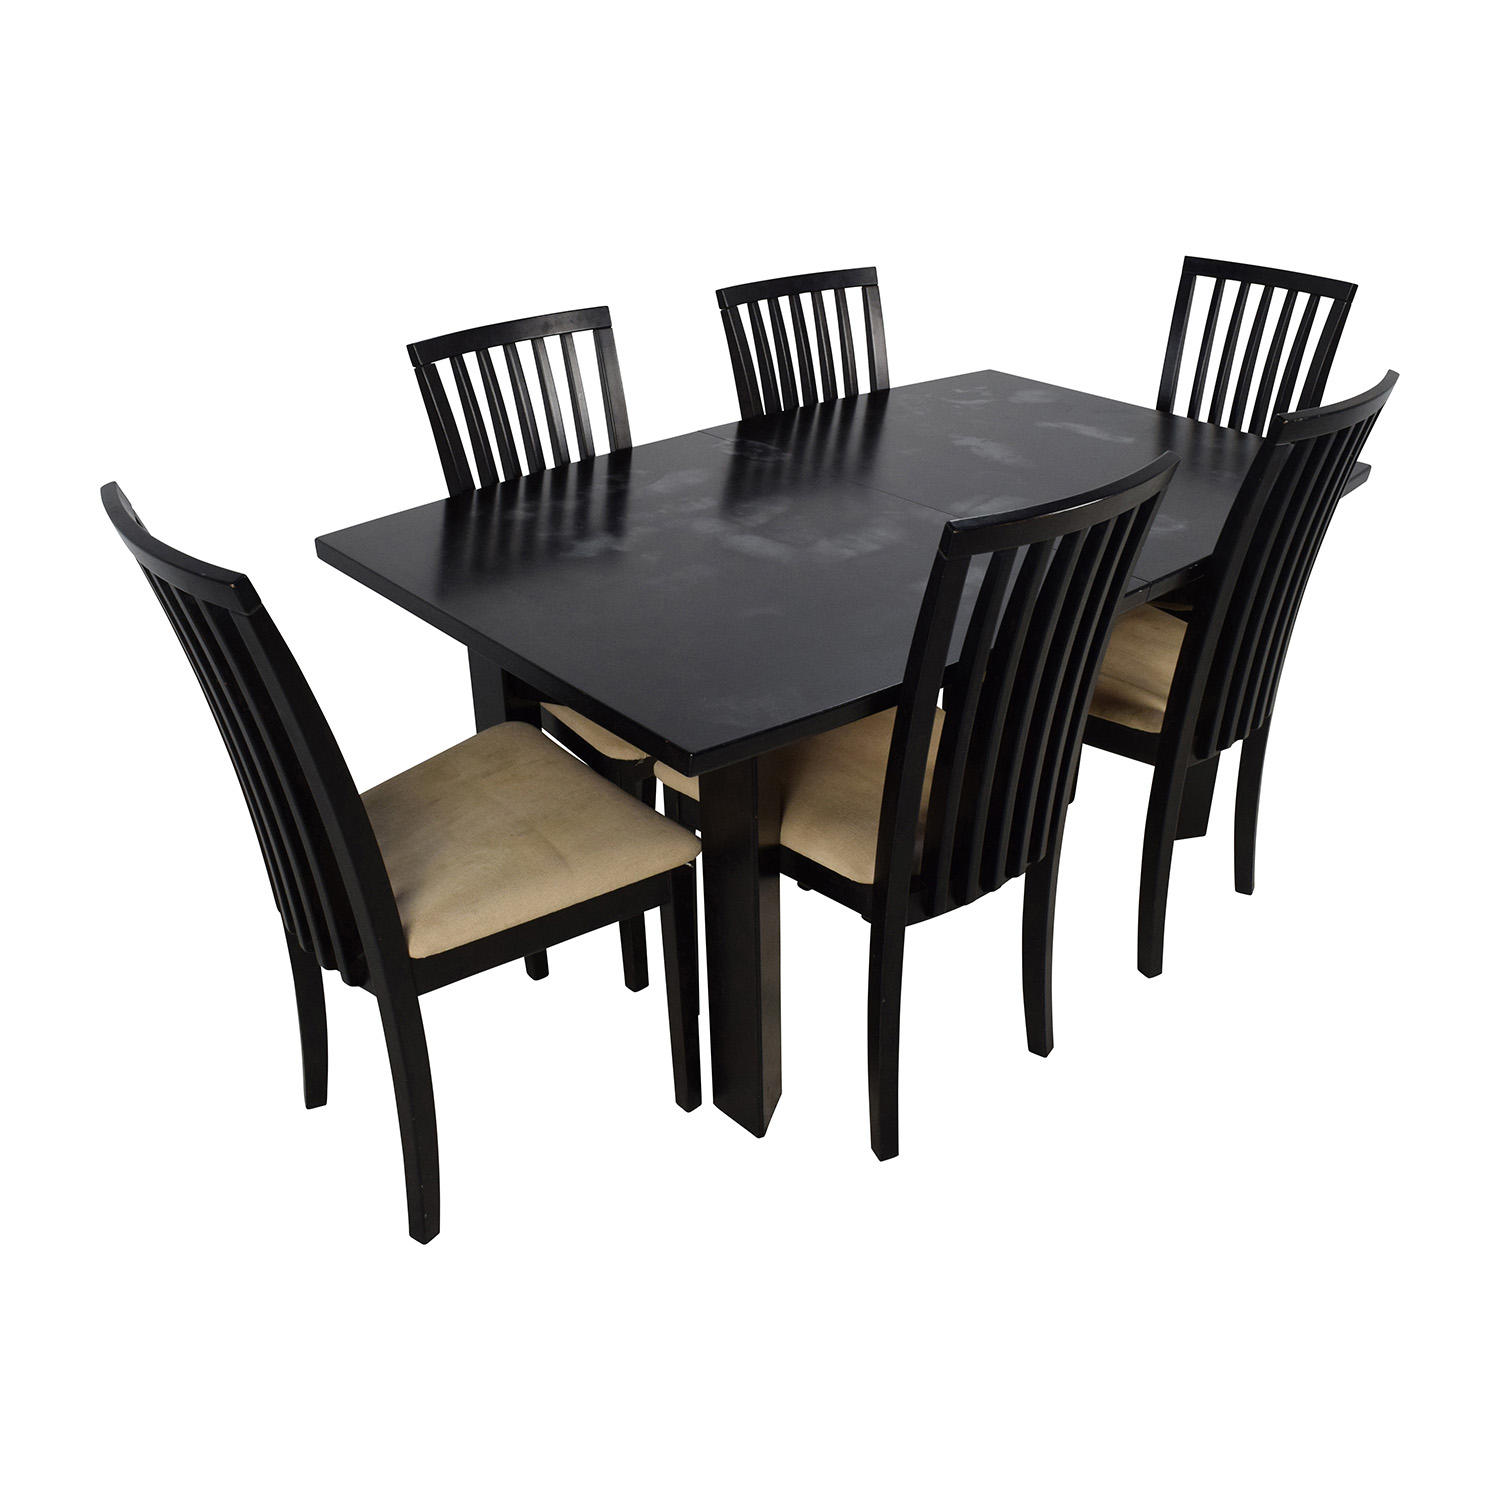 dining table set 6 chairs outdoor chaise lounge under 100 90 off skovby sm 24 with butterfly